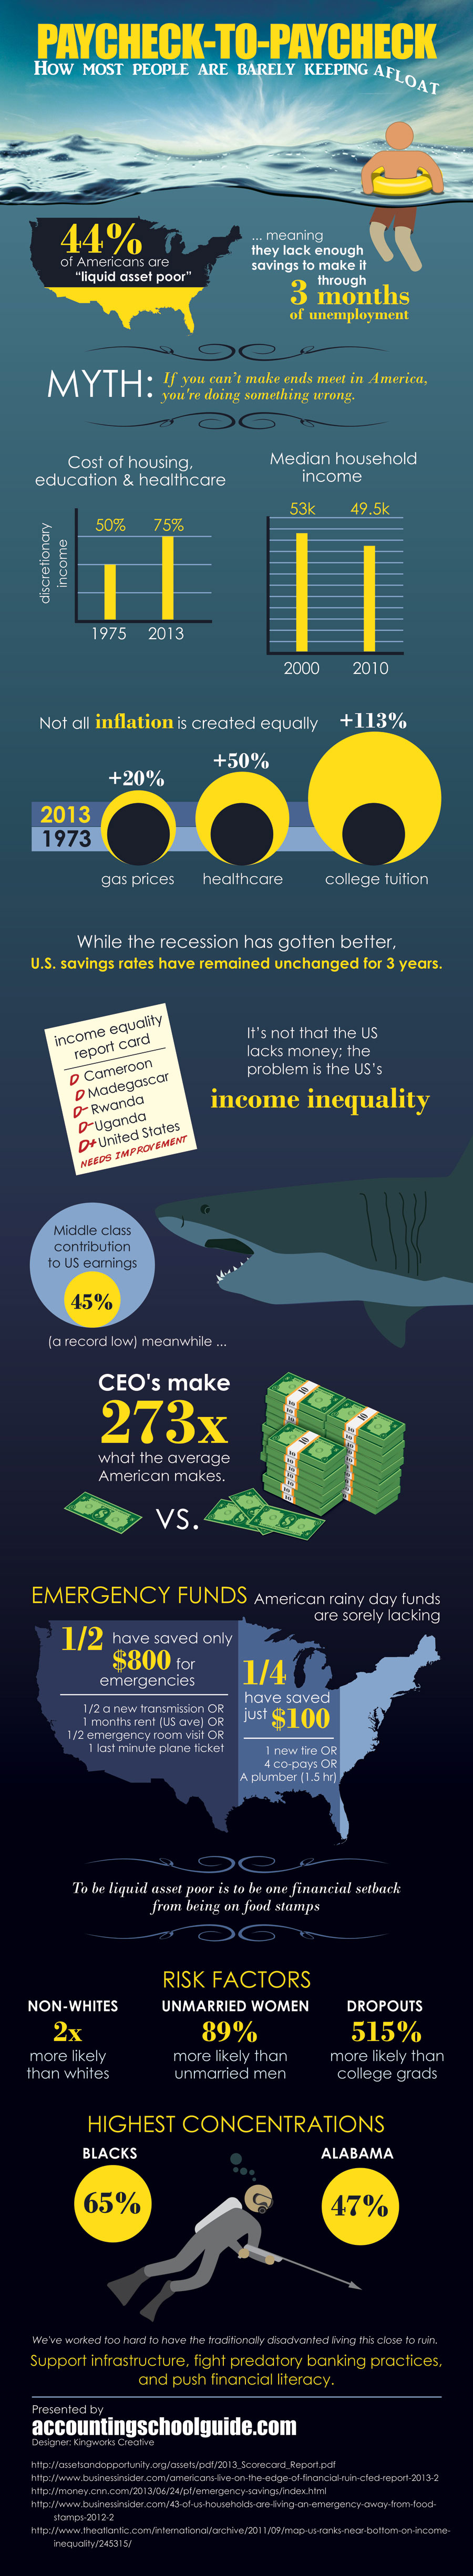 Paycheck To Paycheck infographic